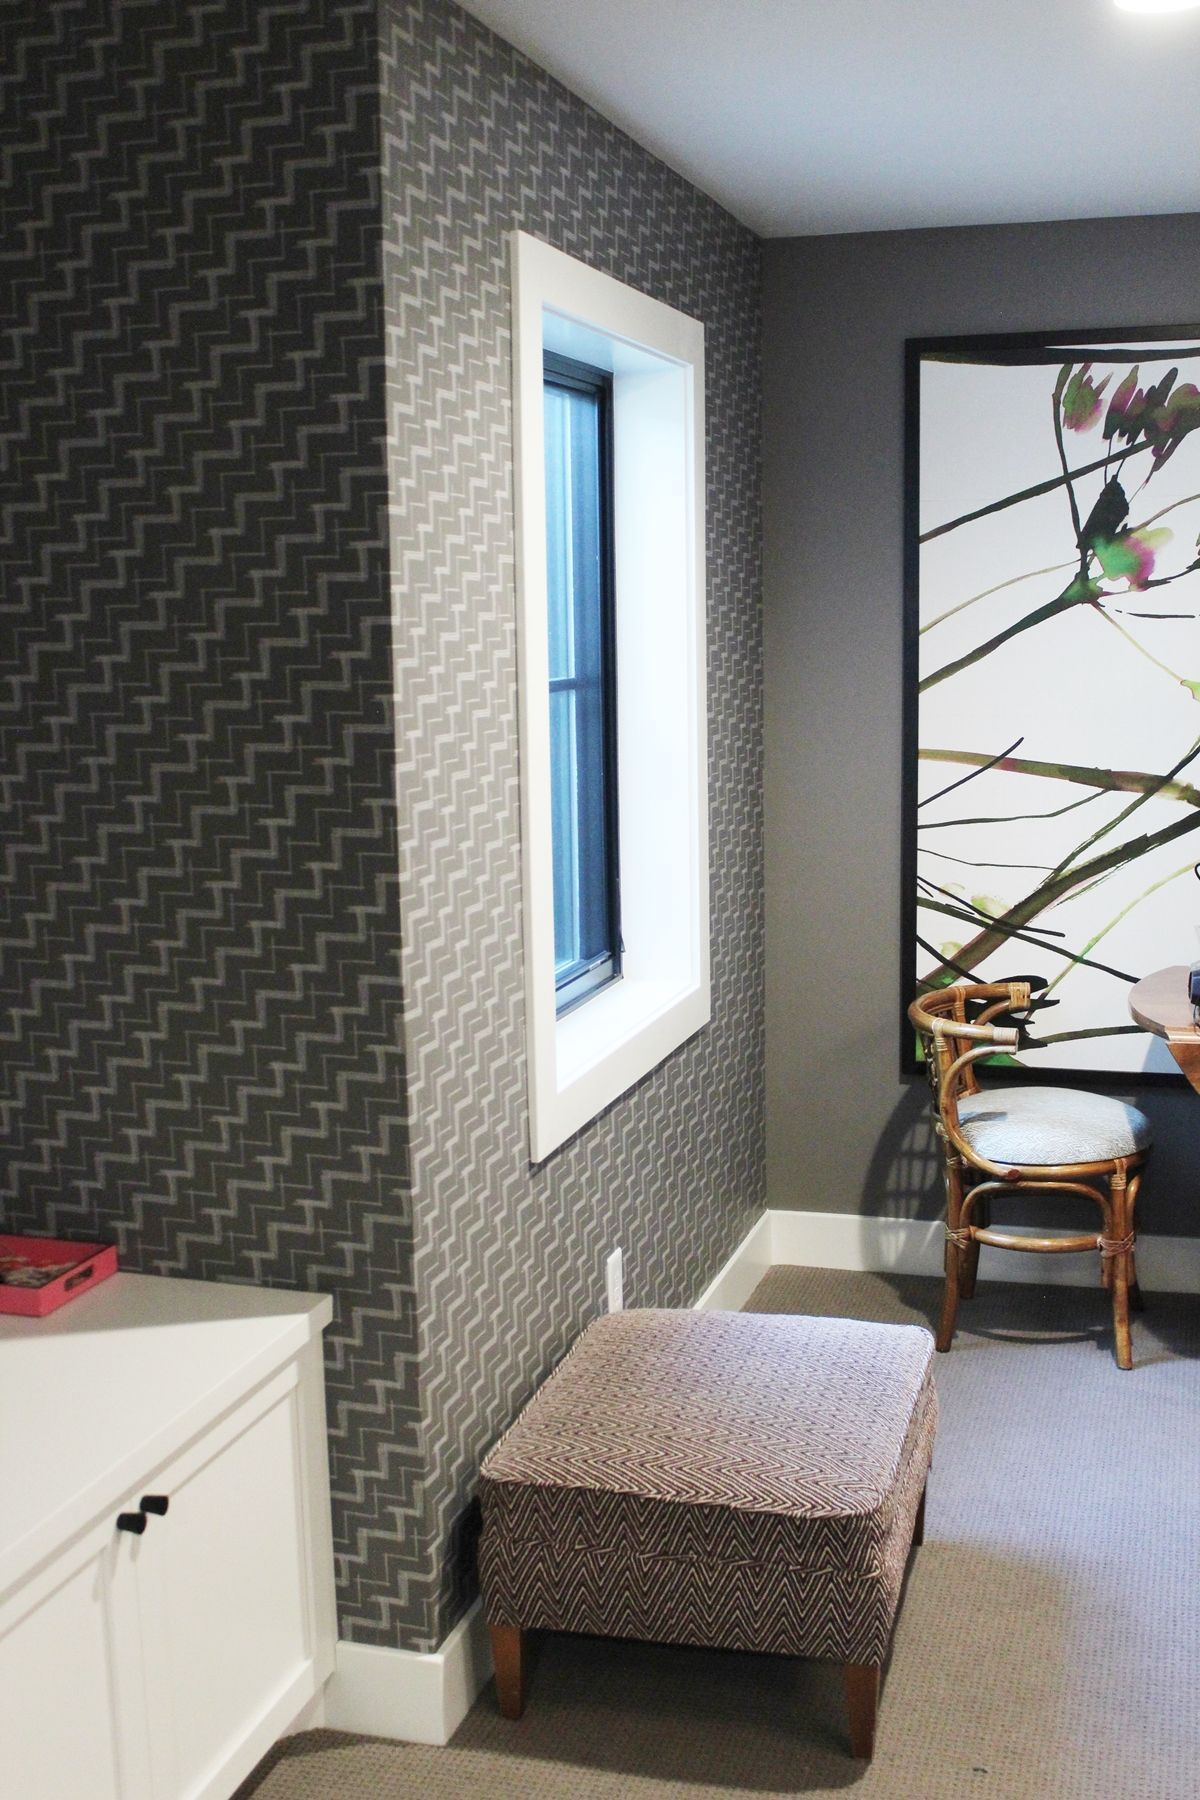 How To Clean Walls The Nitty Gritty On Cleaning Painted Wallpapered And Paneled Walls Cleaning Walls Wall Wallpaper Cleaning